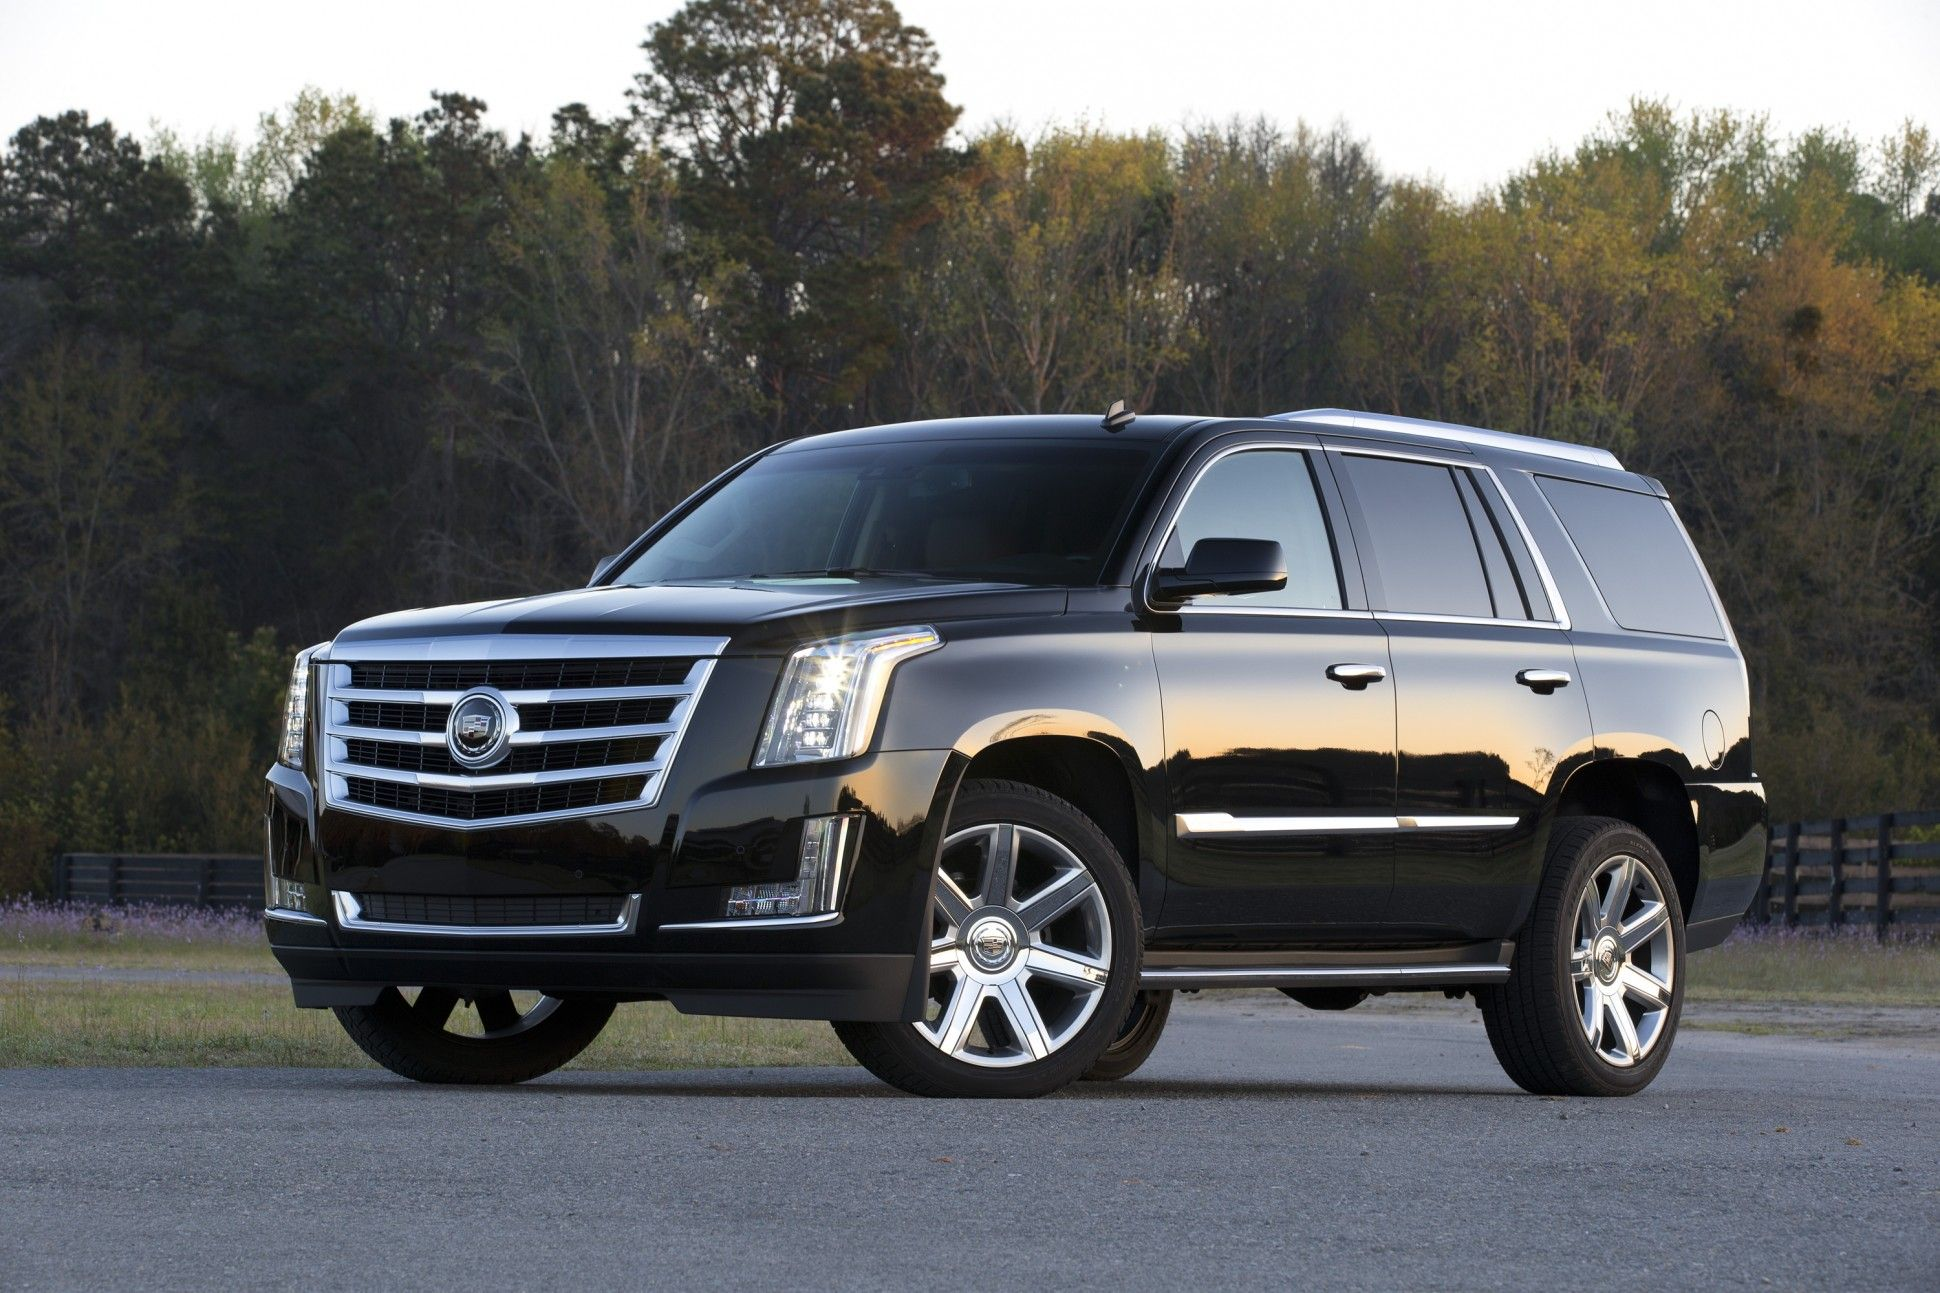 With Hot Escalade Cadillac Loves To Leave Well Enough Alone My